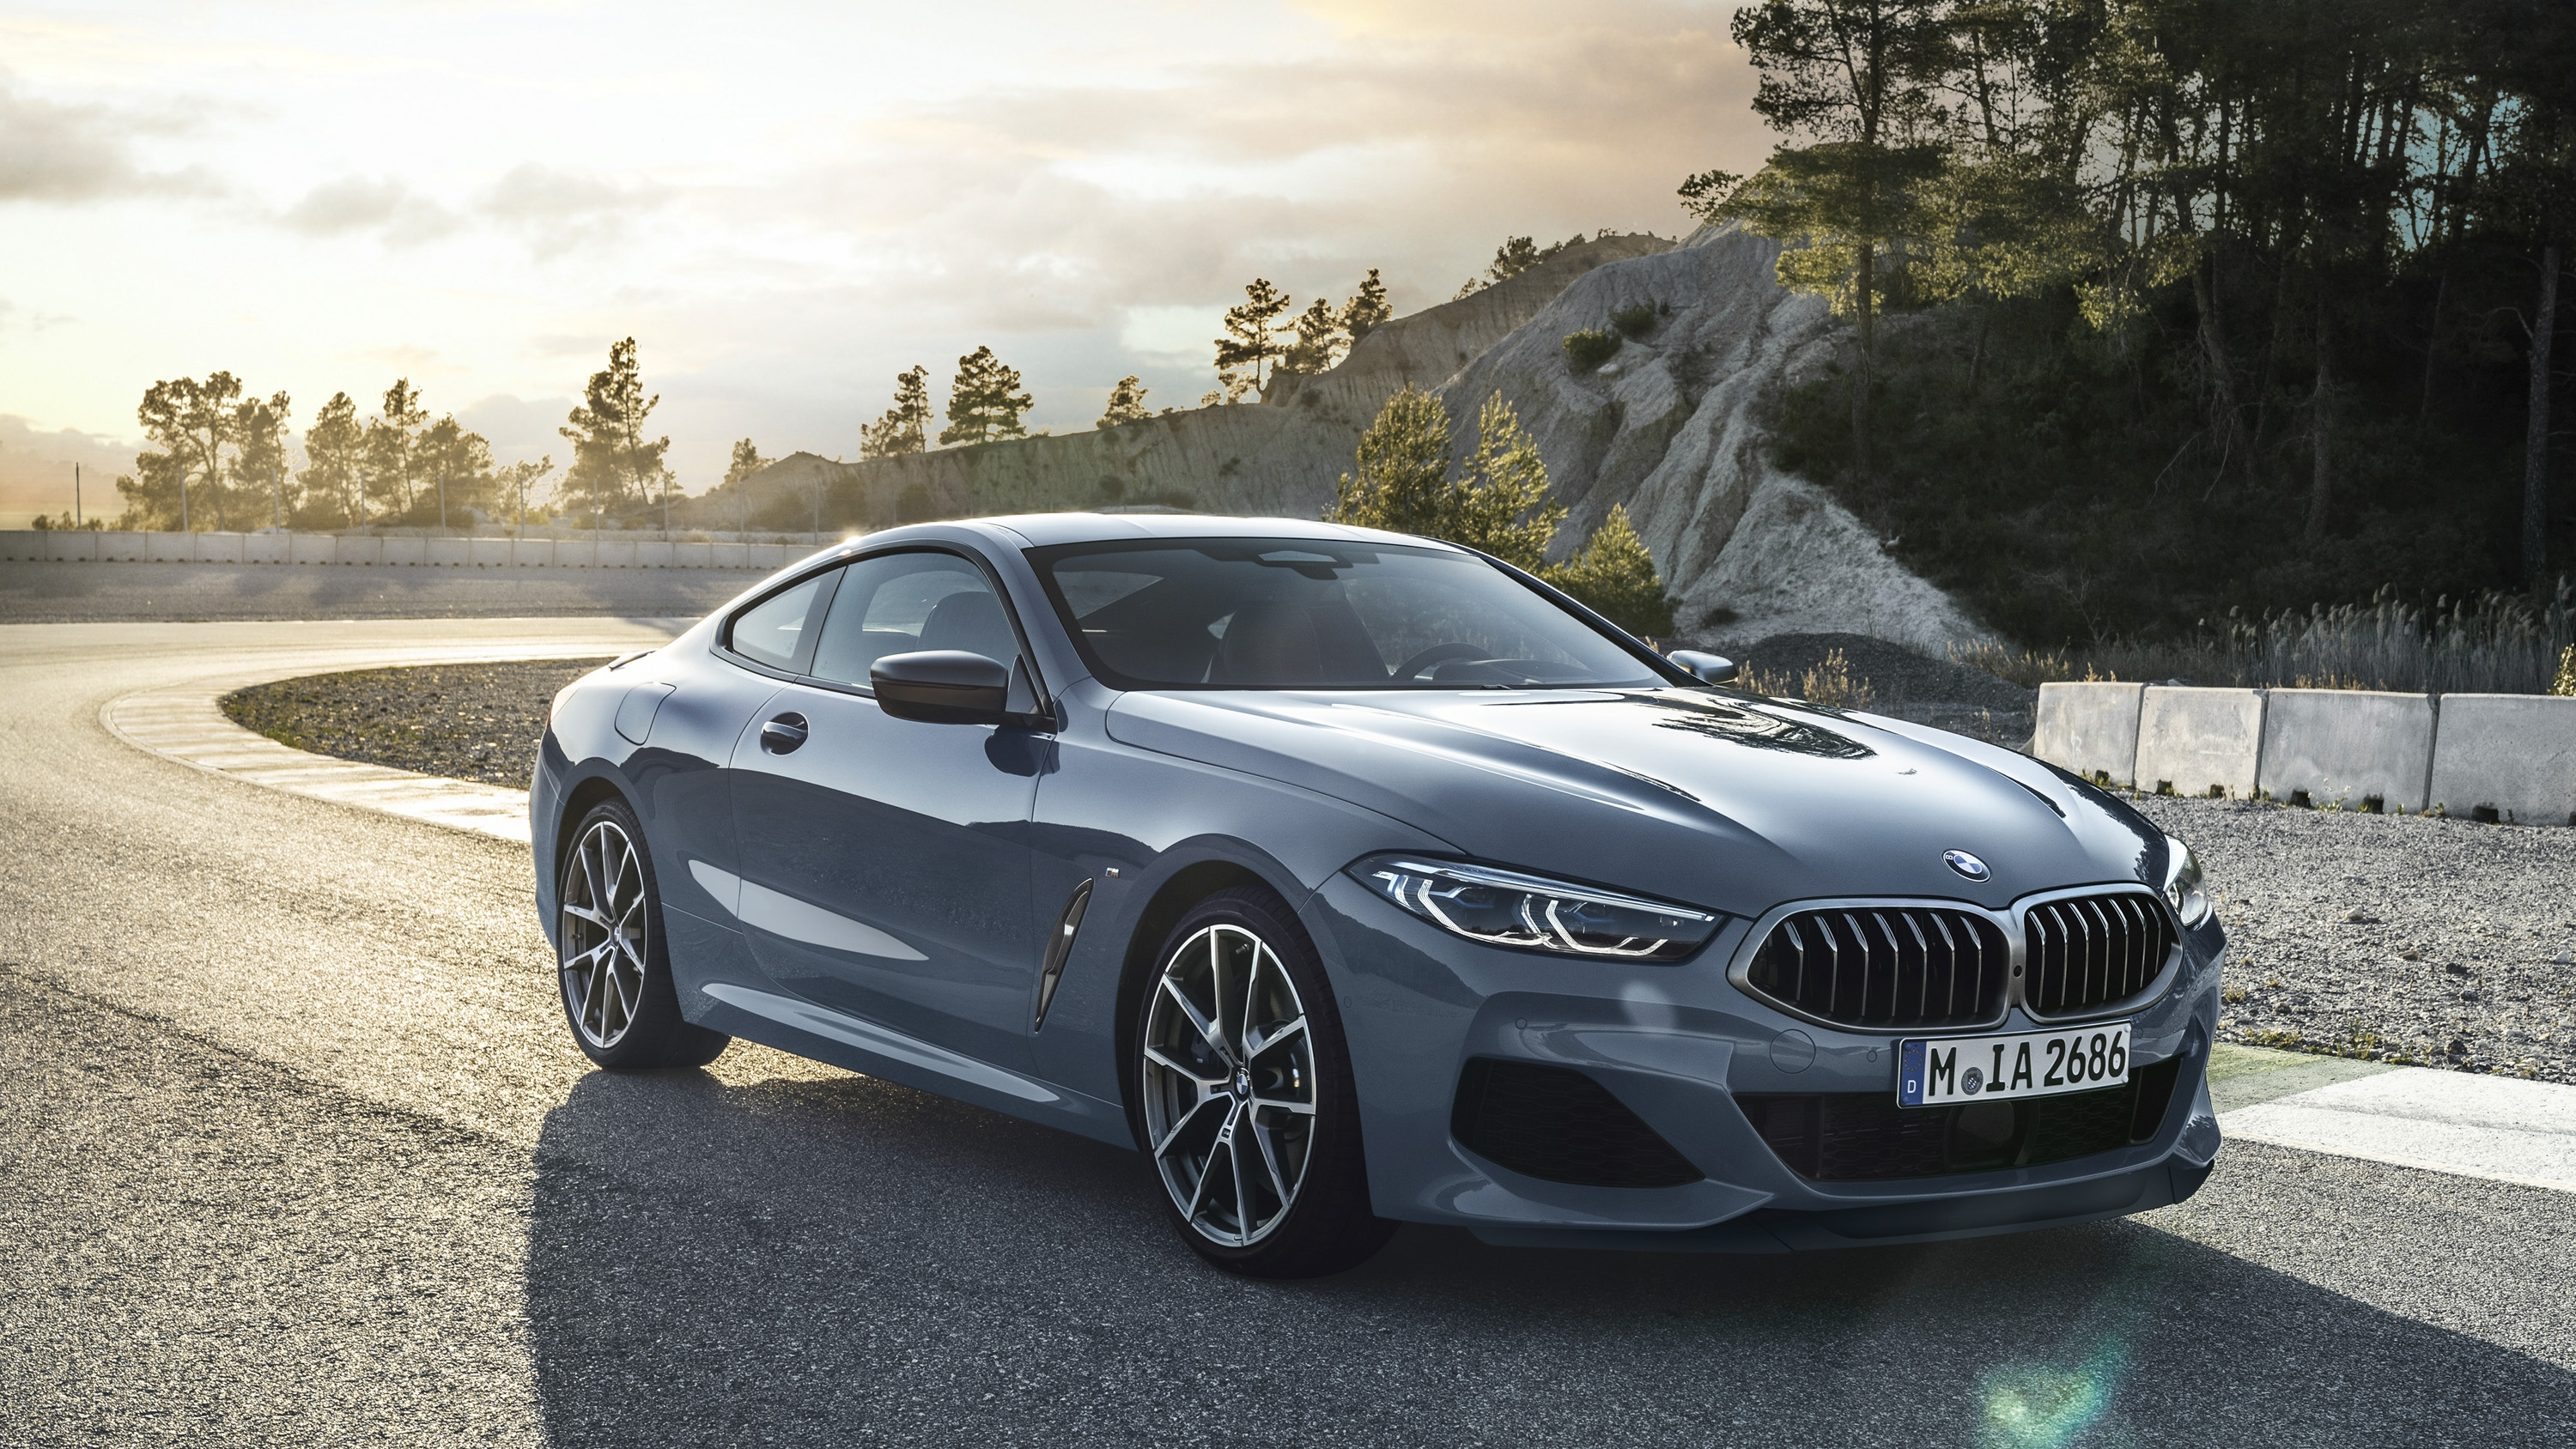 The Bmw 8 Series Coupe Has Debuted And It S Stunning Top